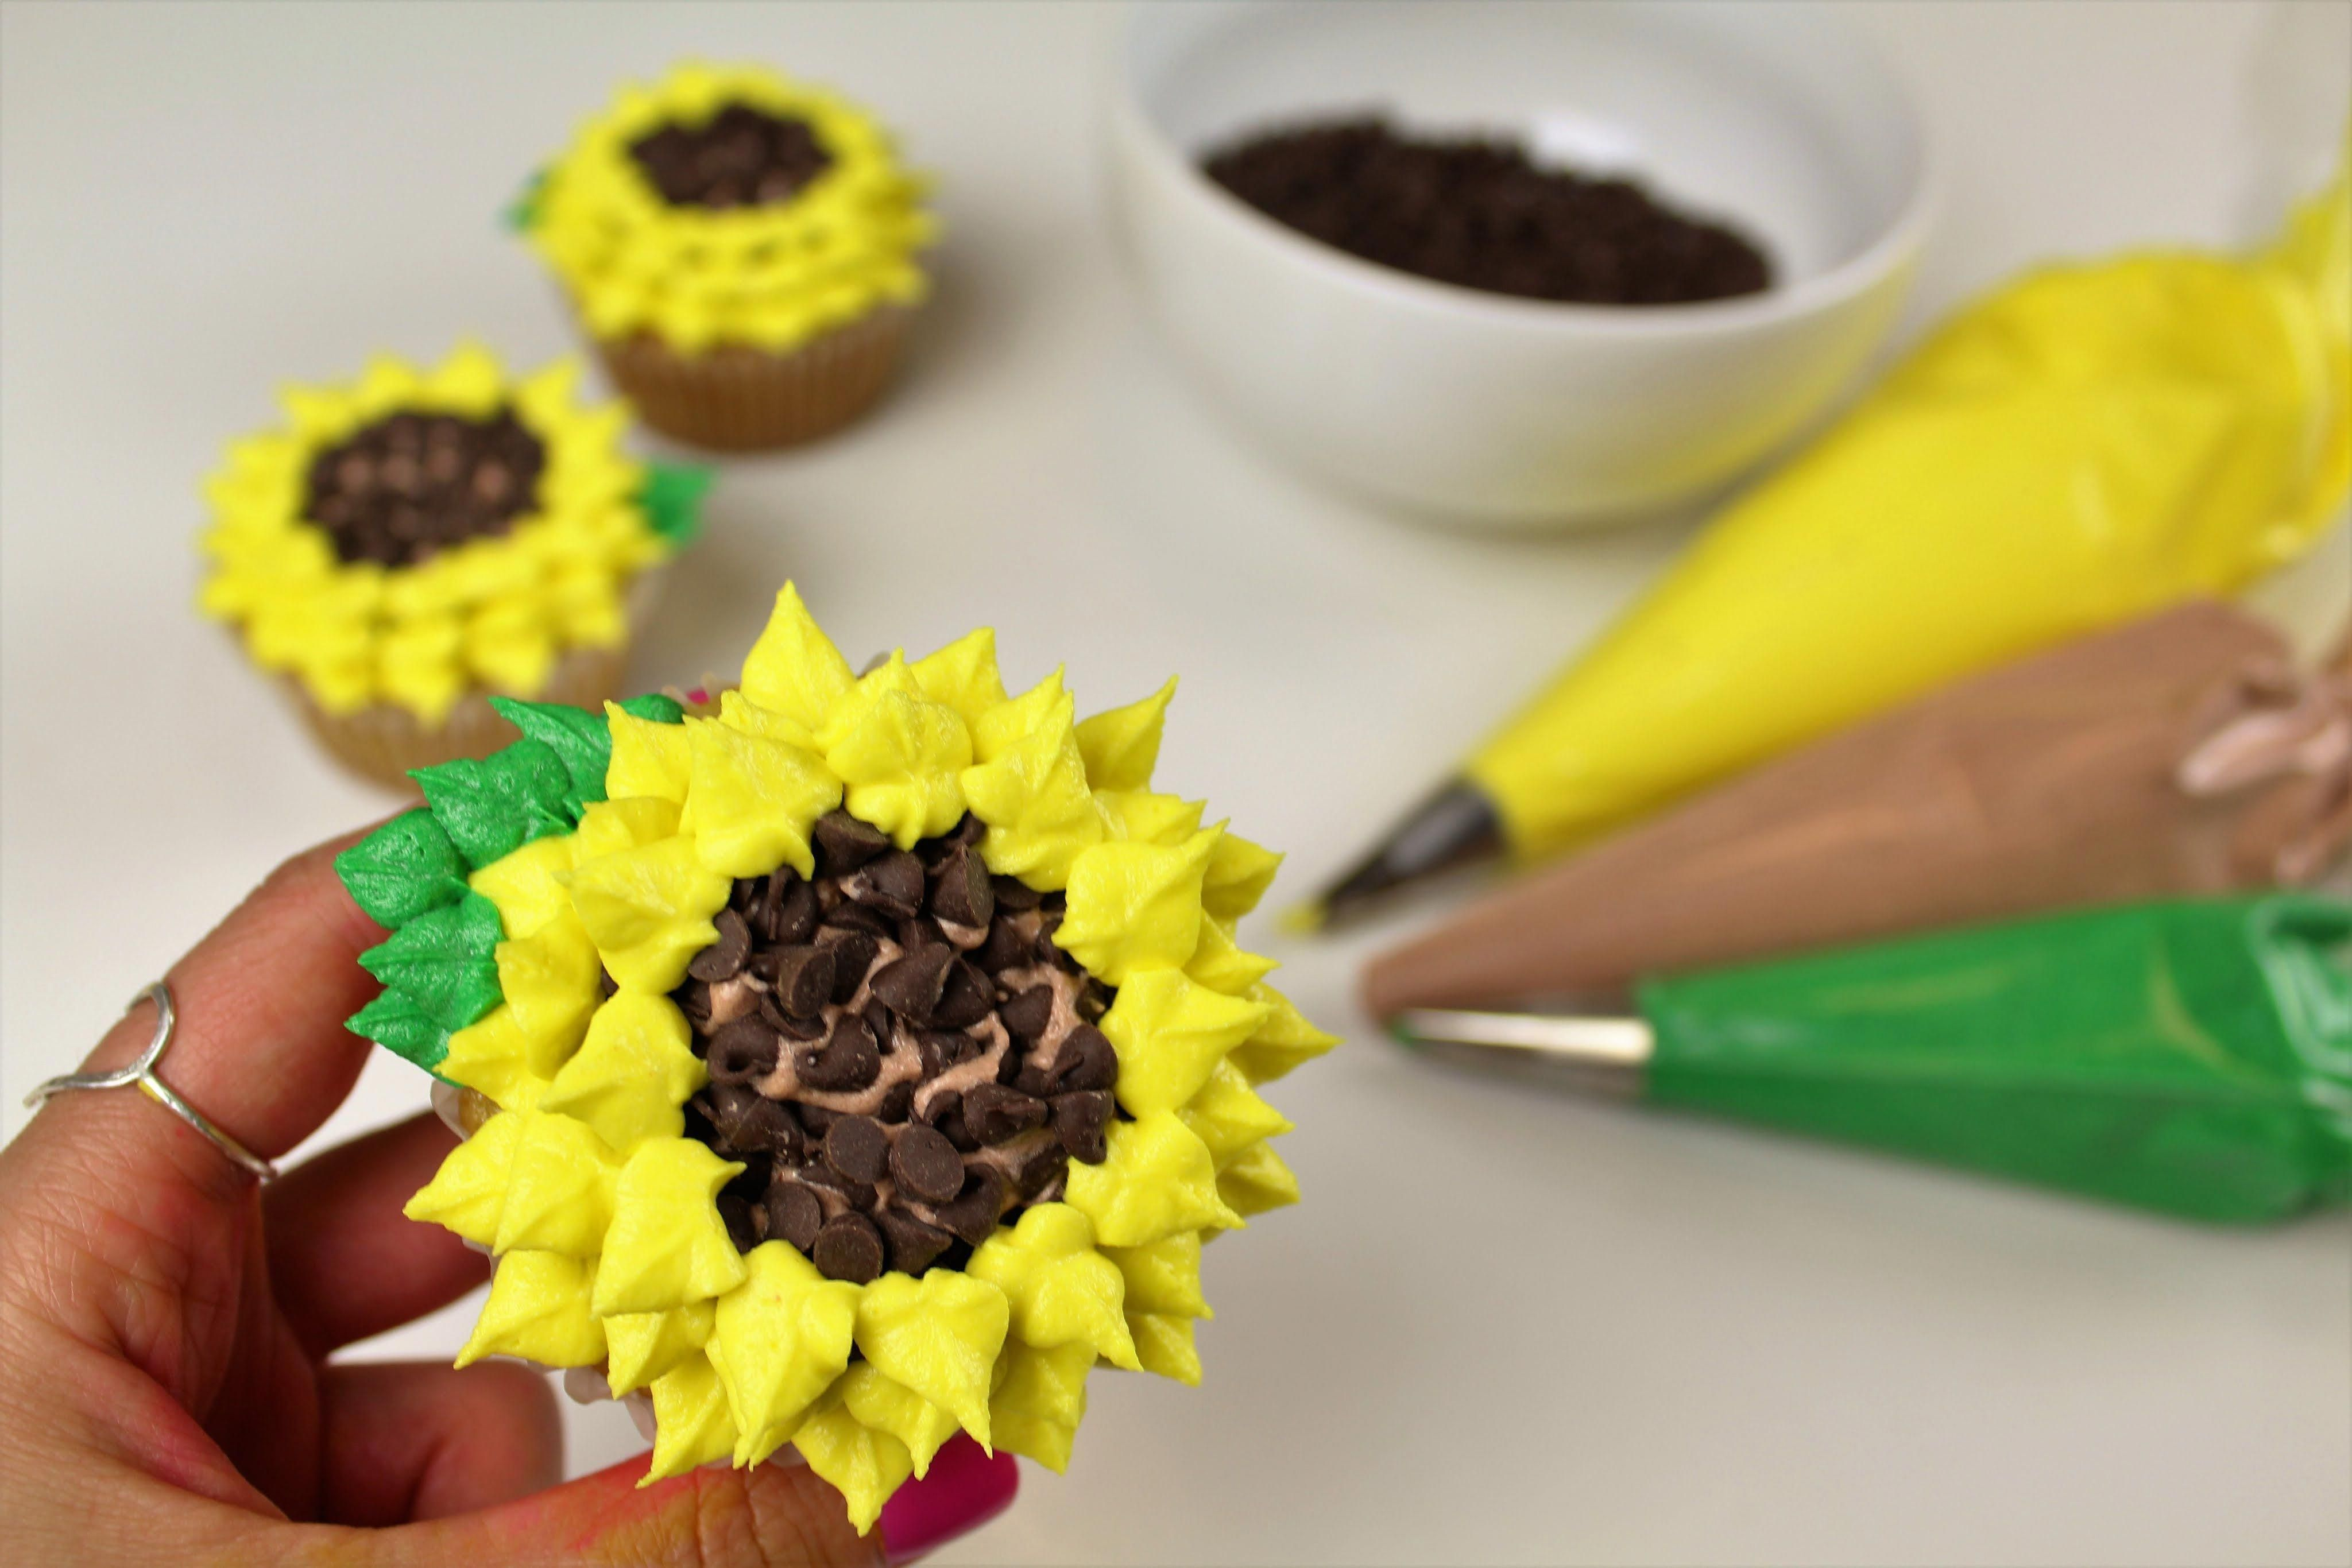 Sunflower Cupcake Tutorial - the perfect cupcakes for summer! #sunflowercupcakes Sunflower Cupcake Tutorial - the perfect cupcakes for summer! #sunflowercupcakes Sunflower Cupcake Tutorial - the perfect cupcakes for summer! #sunflowercupcakes Sunflower Cupcake Tutorial - the perfect cupcakes for summer! #sunflowercupcakes Sunflower Cupcake Tutorial - the perfect cupcakes for summer! #sunflowercupcakes Sunflower Cupcake Tutorial - the perfect cupcakes for s #summercupcakes #sunflowercupcakes